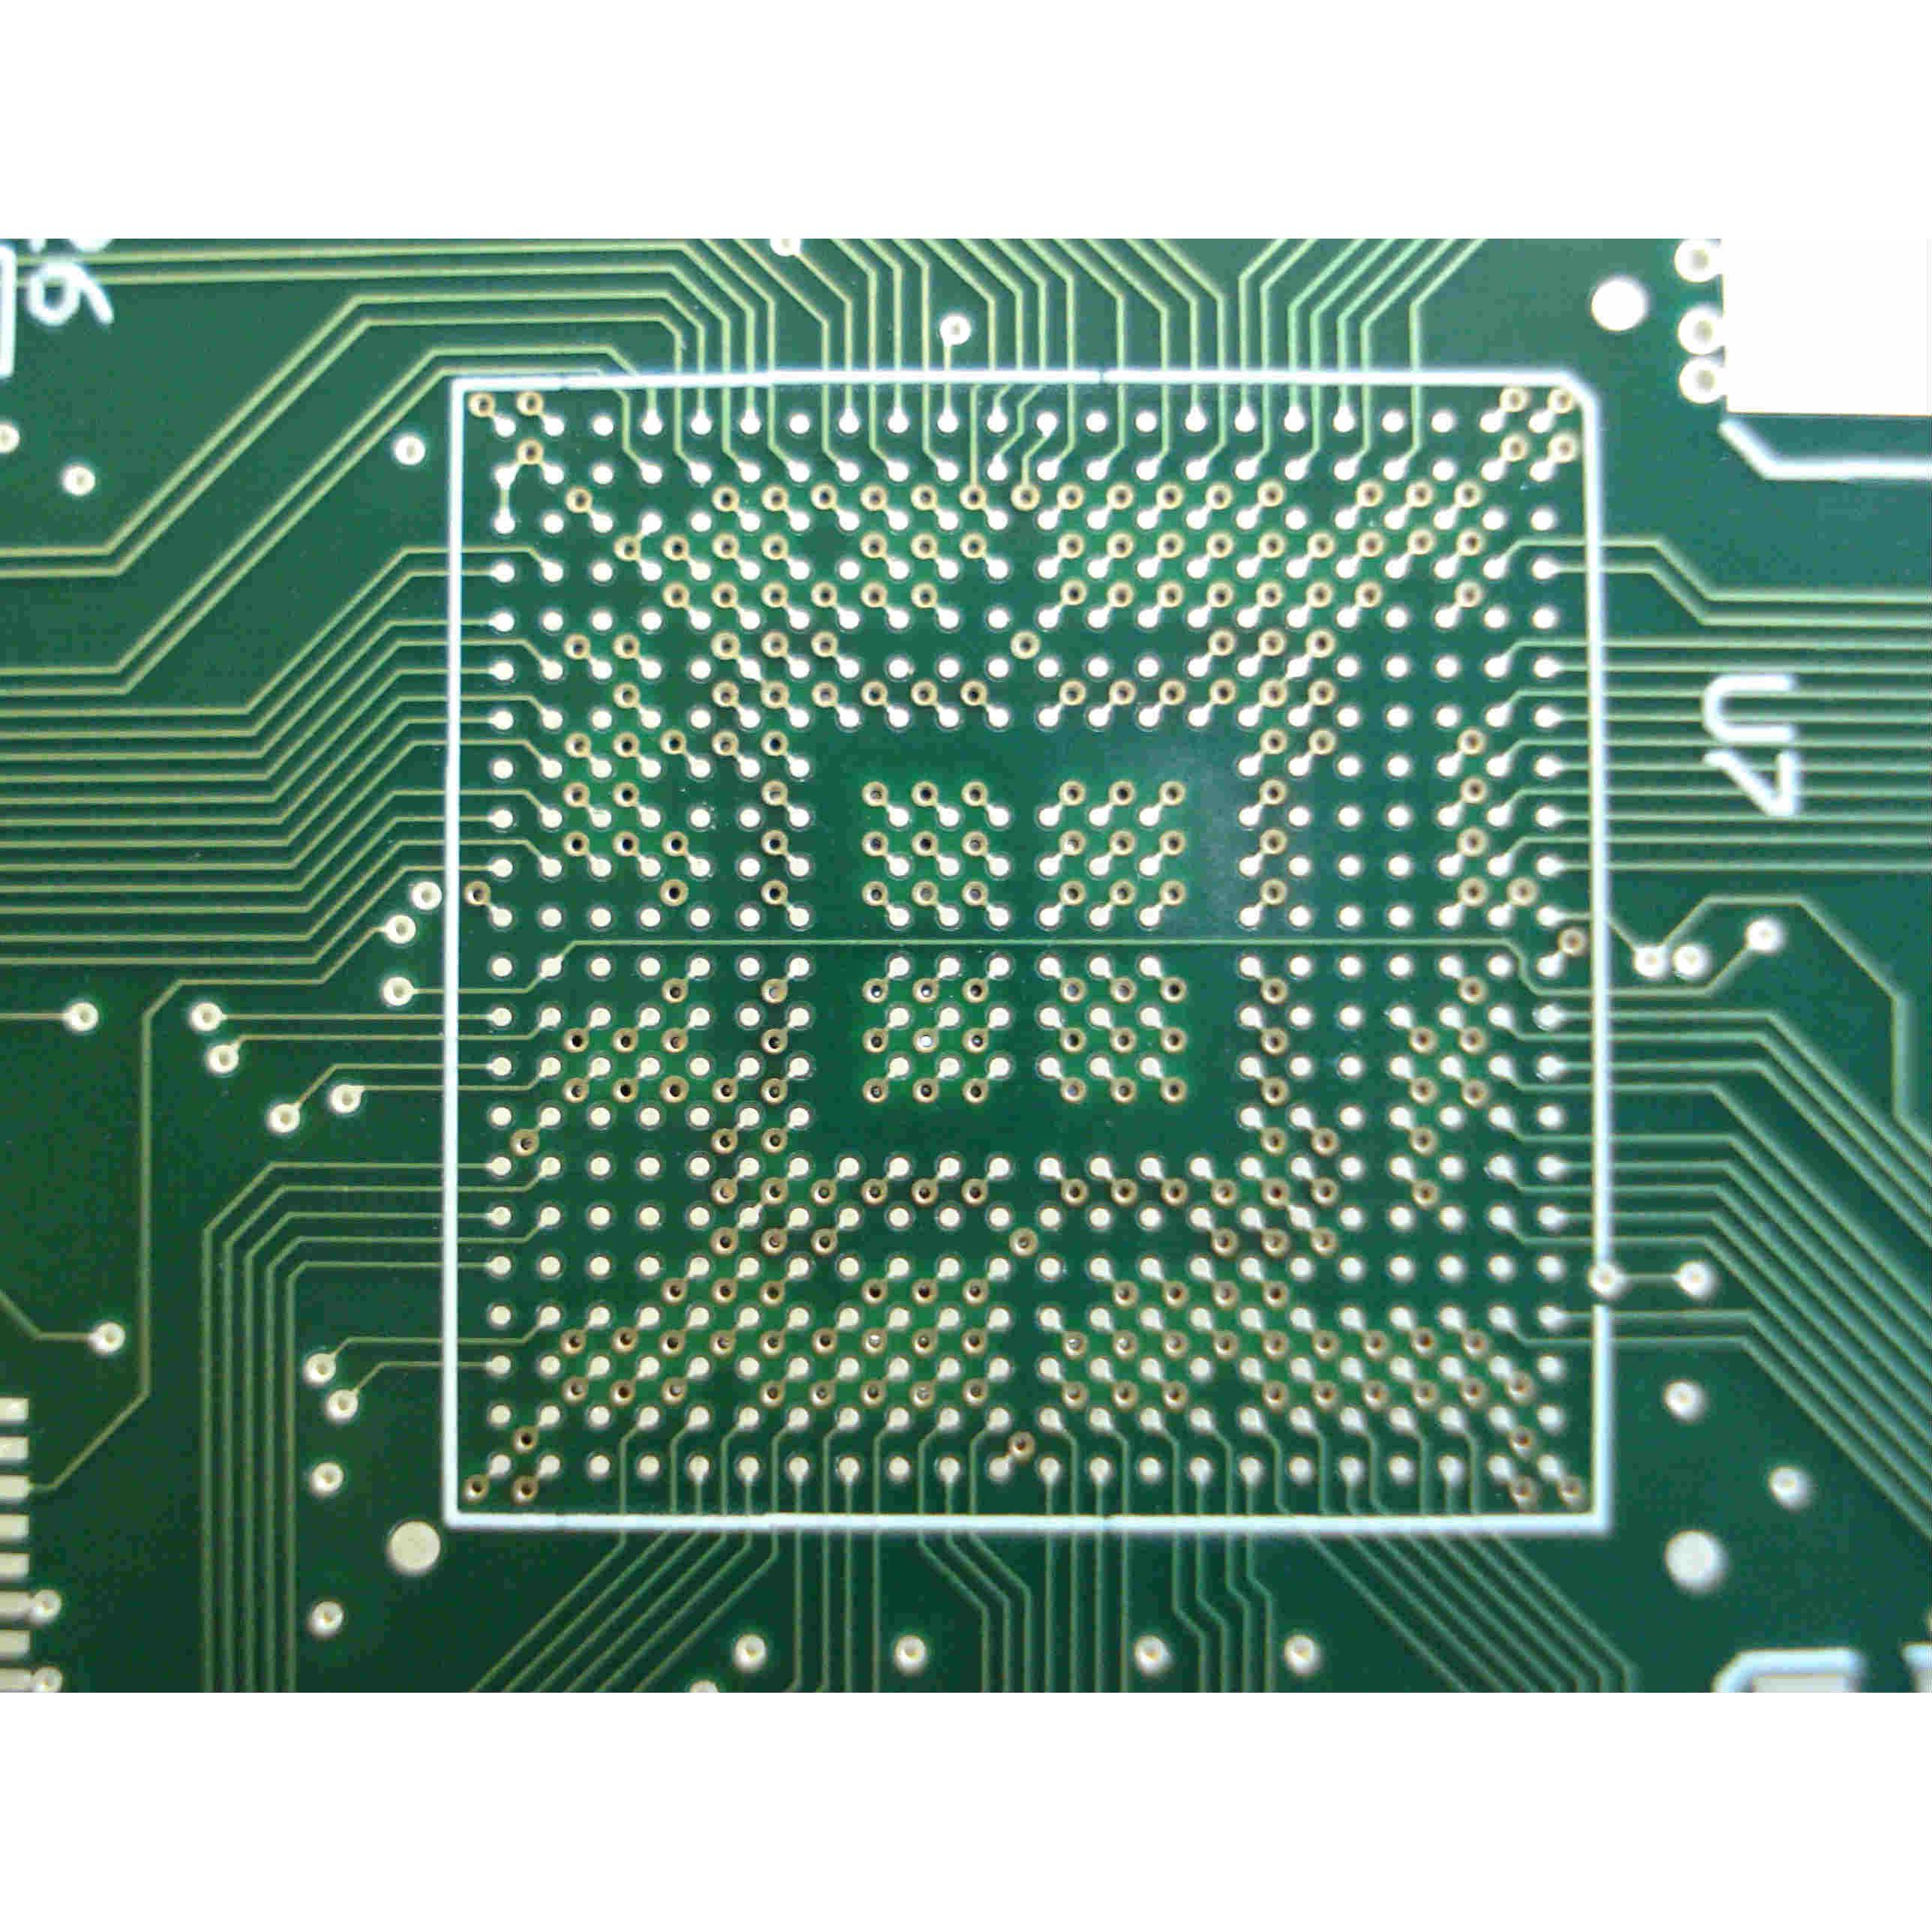 ball-grid-array-pcb